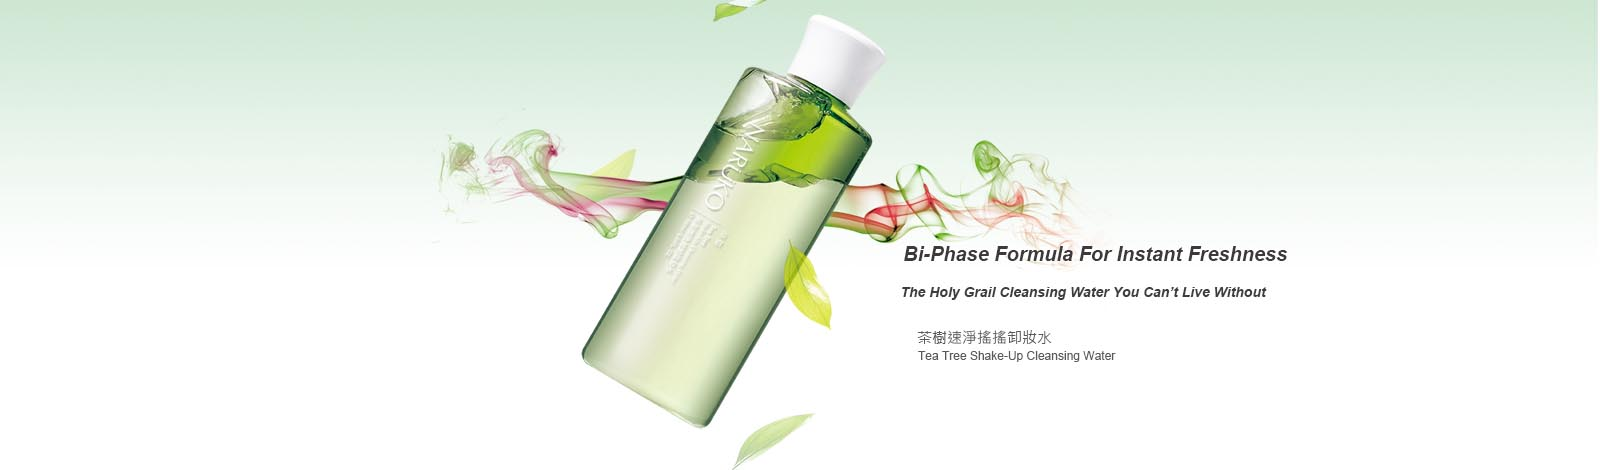 tea-tree-shake-up-cleansing-water-01.jpg